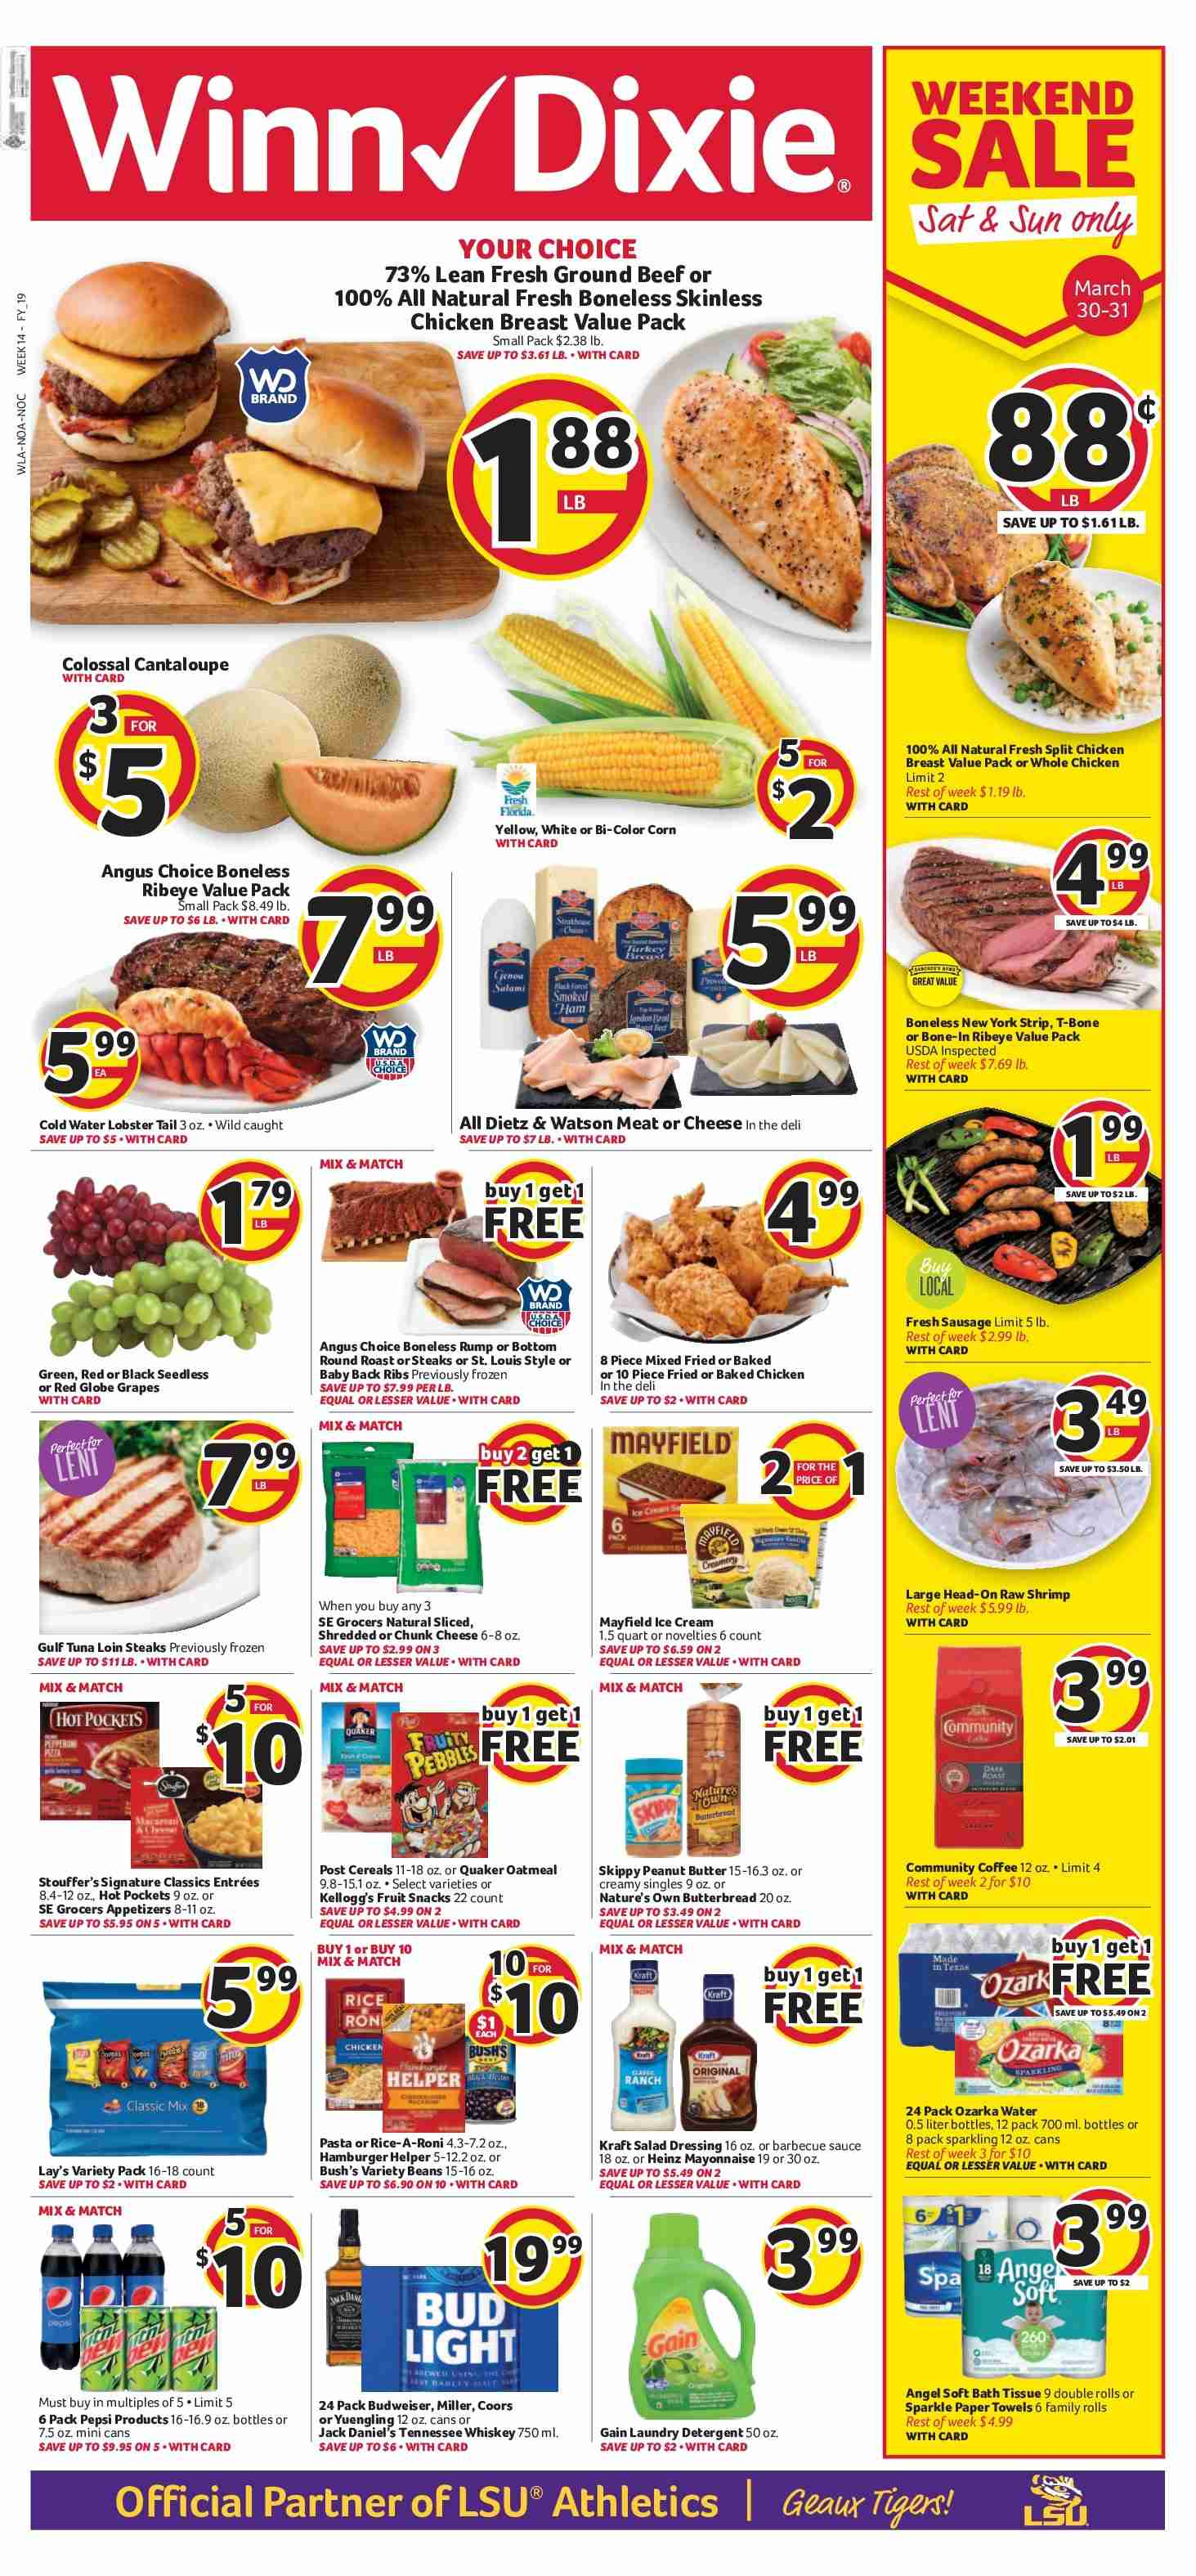 Winn Dixie Flyer - 03.27.2019 - 04.02.2019 - Sales products - Budweiser, Bud Light, Coors, cantaloupe, corn, grapes, red globe grapes, rolls, whole chicken, chicken, chicken breast, beef meat, ground beef, hamburger, lobster, tuna, lobster tail, shrimps, sausage, cheese, mayonnaise, sauce, ice cream, beans, snack, Lay's, Heinz, barbecue sauce, dressing, salad dressing, Pepsi, water, Tennessee Whiskey, whiskey, Jack Daniel's, bath tissue, paper towel, Gain, ribs. Page 1.